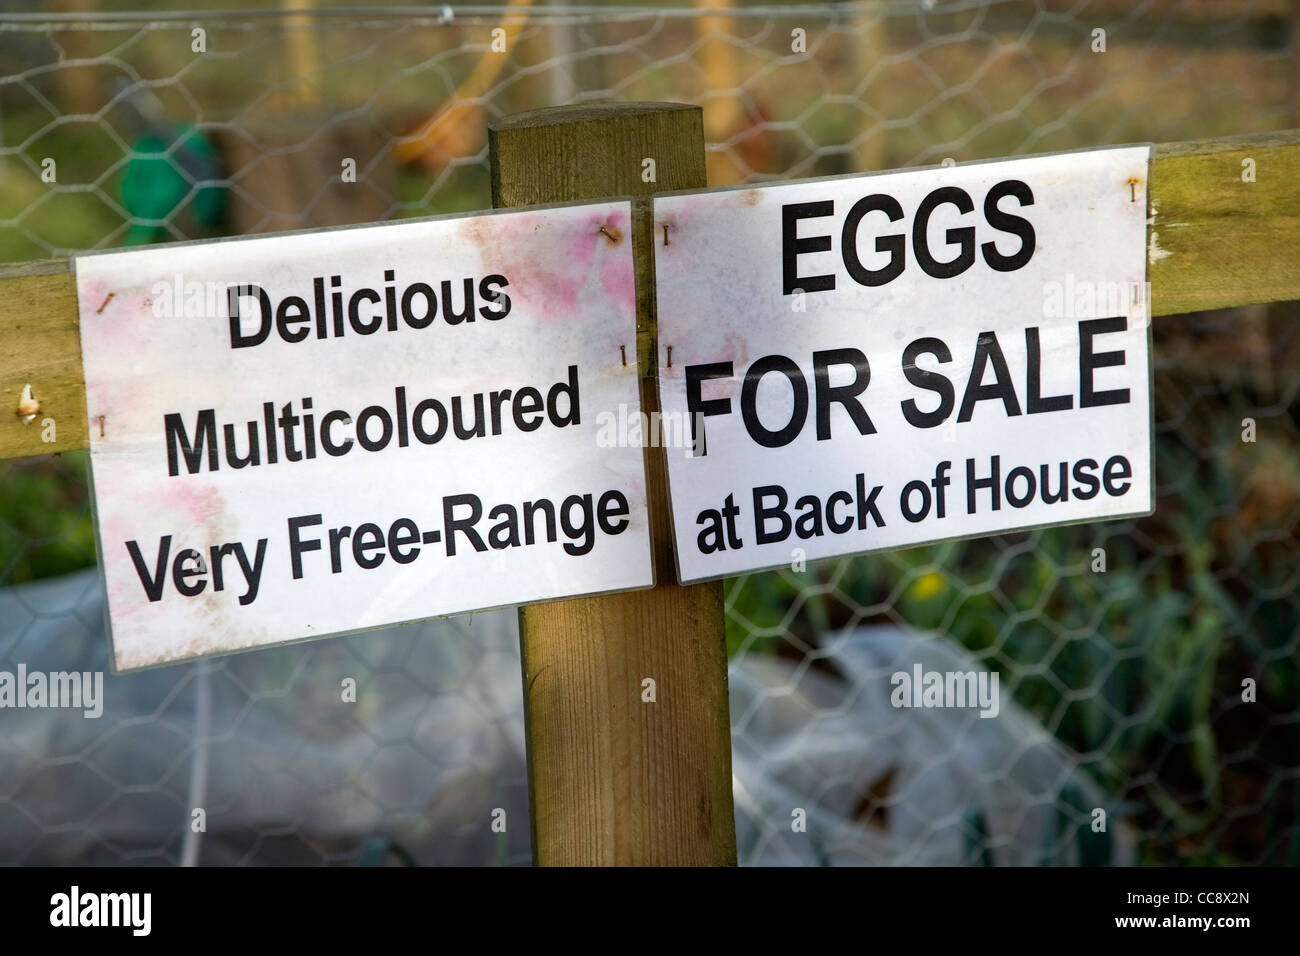 Free range eggs for sale sign - Stock Image